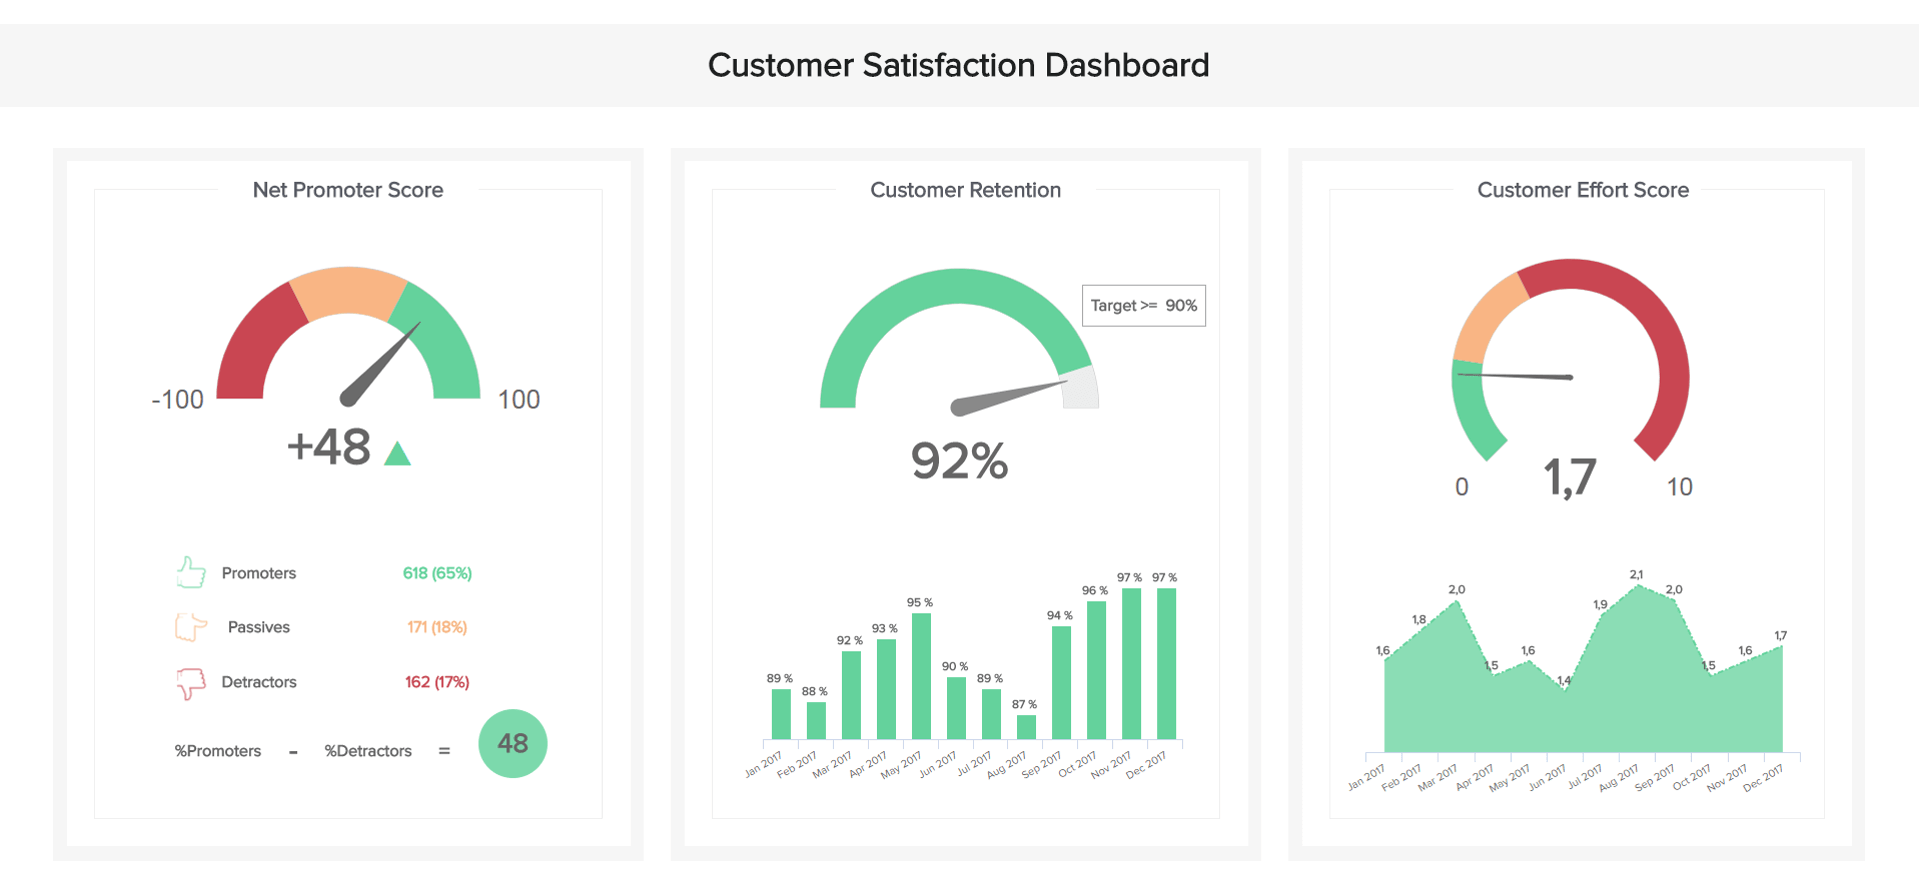 Dashboard designs: The customer satisfaction dashboard displays the Customer Effort Score, the Net Promoter Score, that both impact the customer satisfaction.